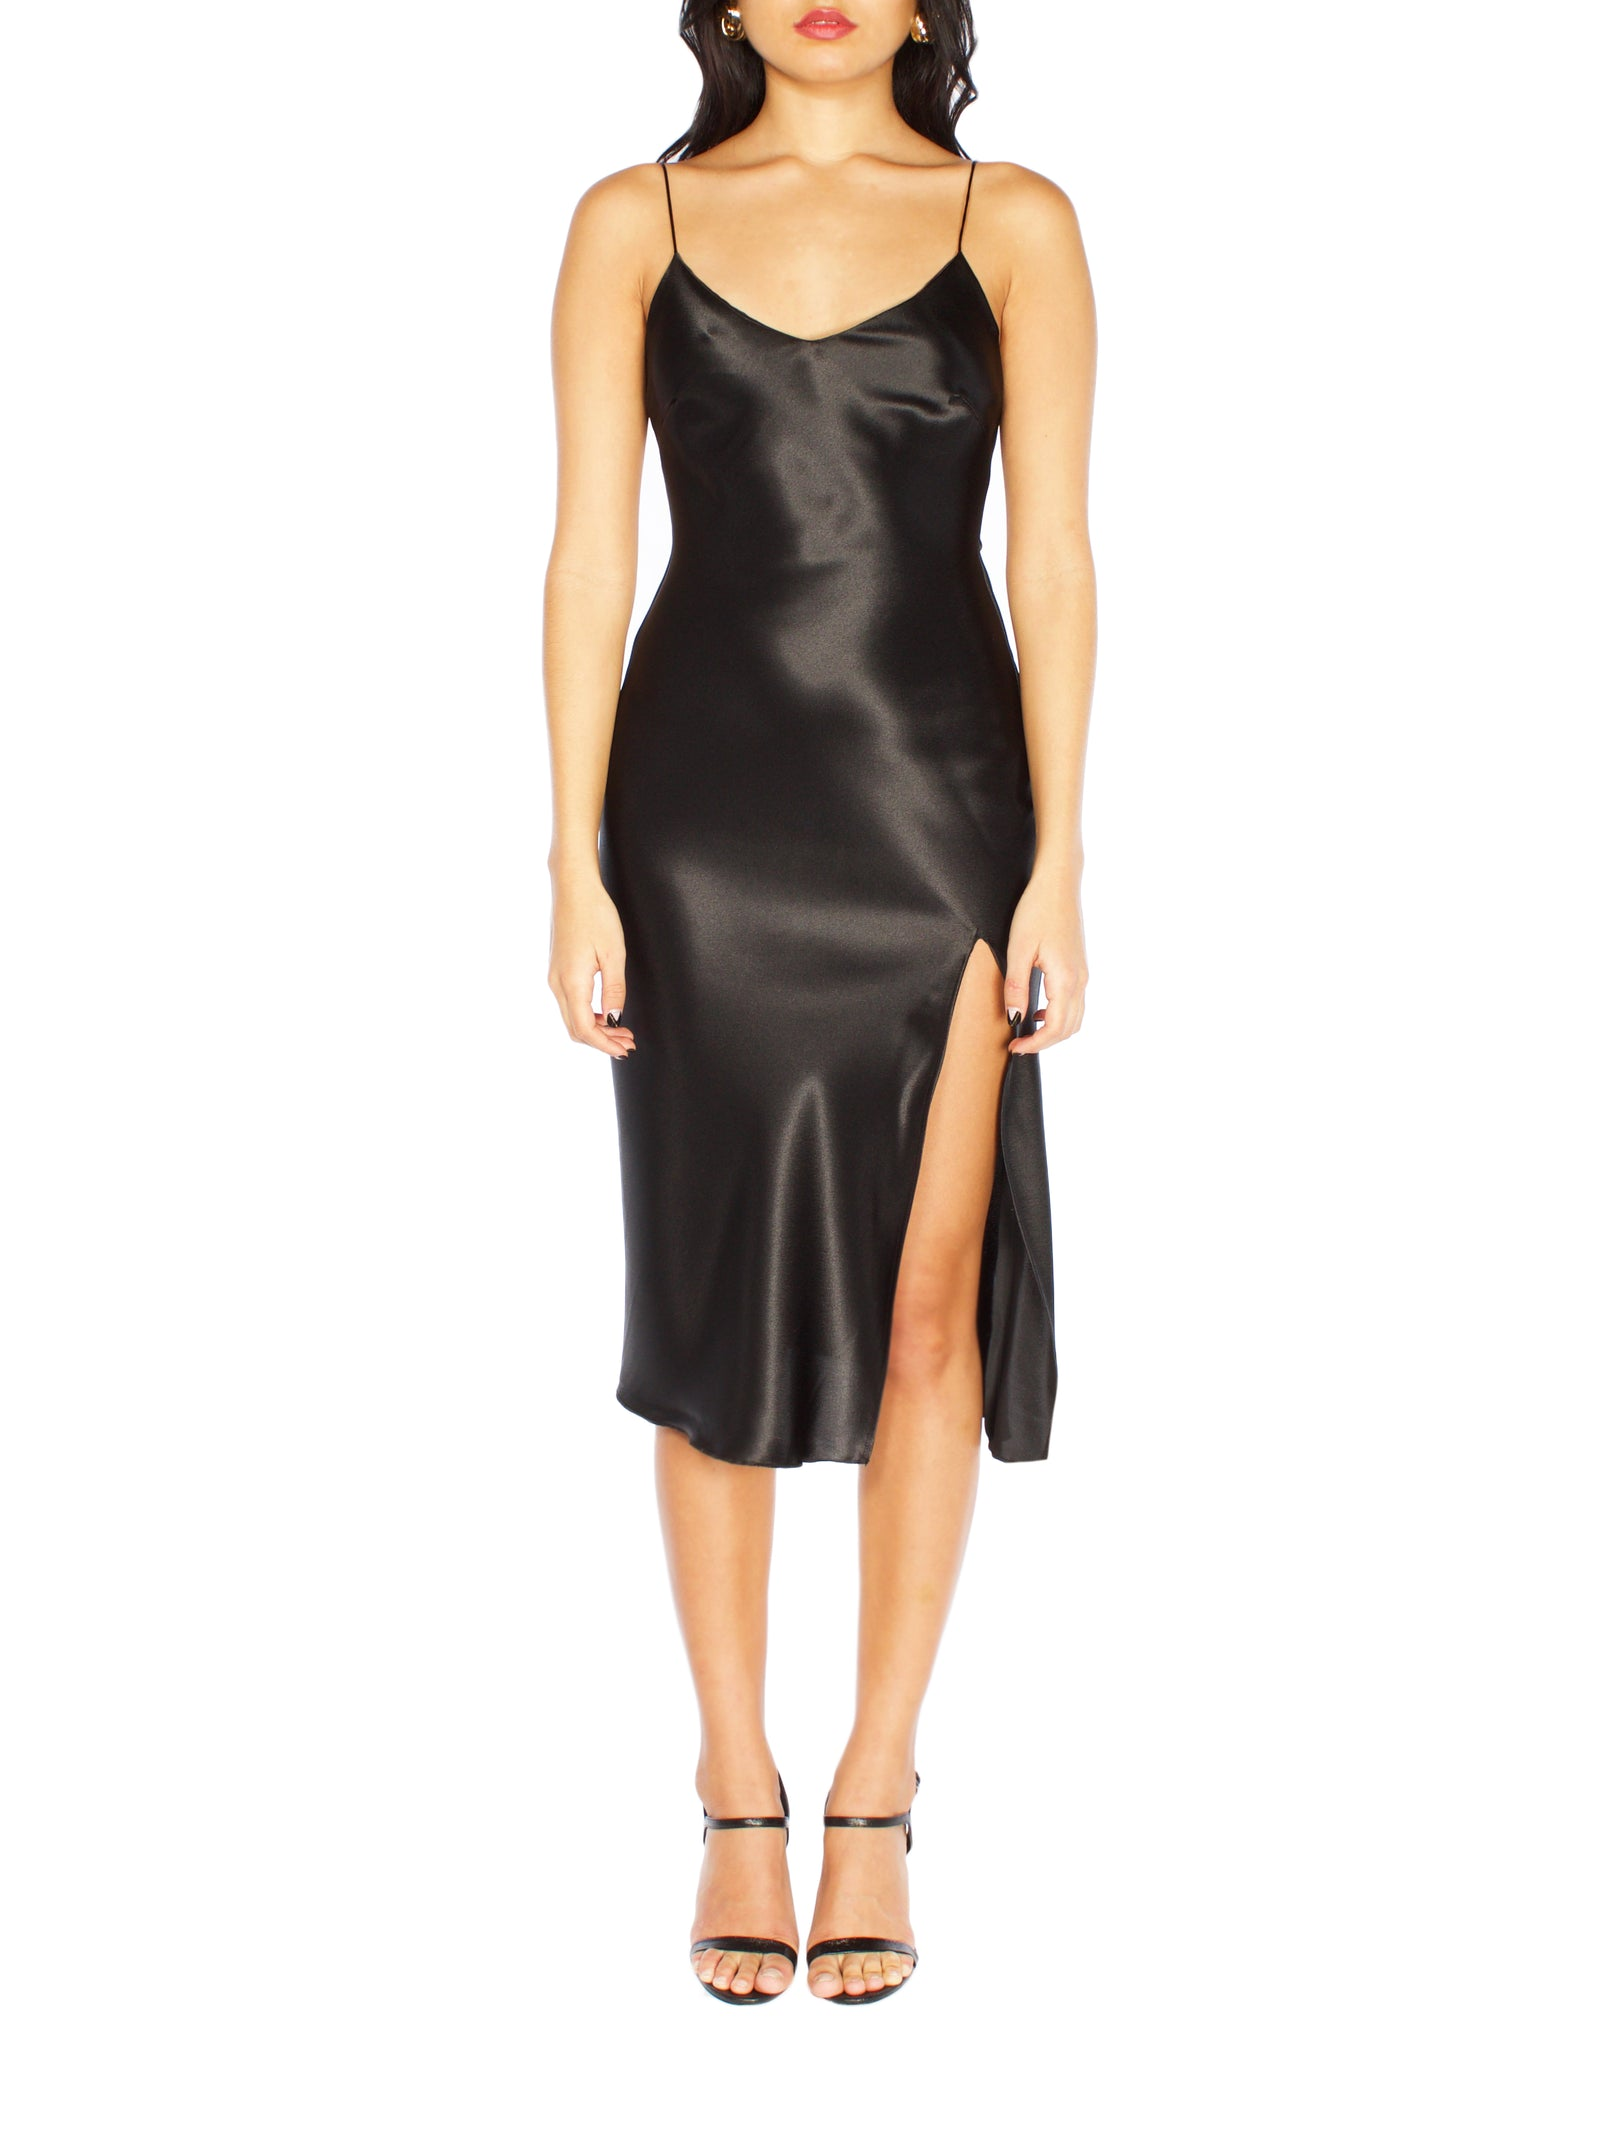 DEDE Midi Slit Dress - PRADEGAL